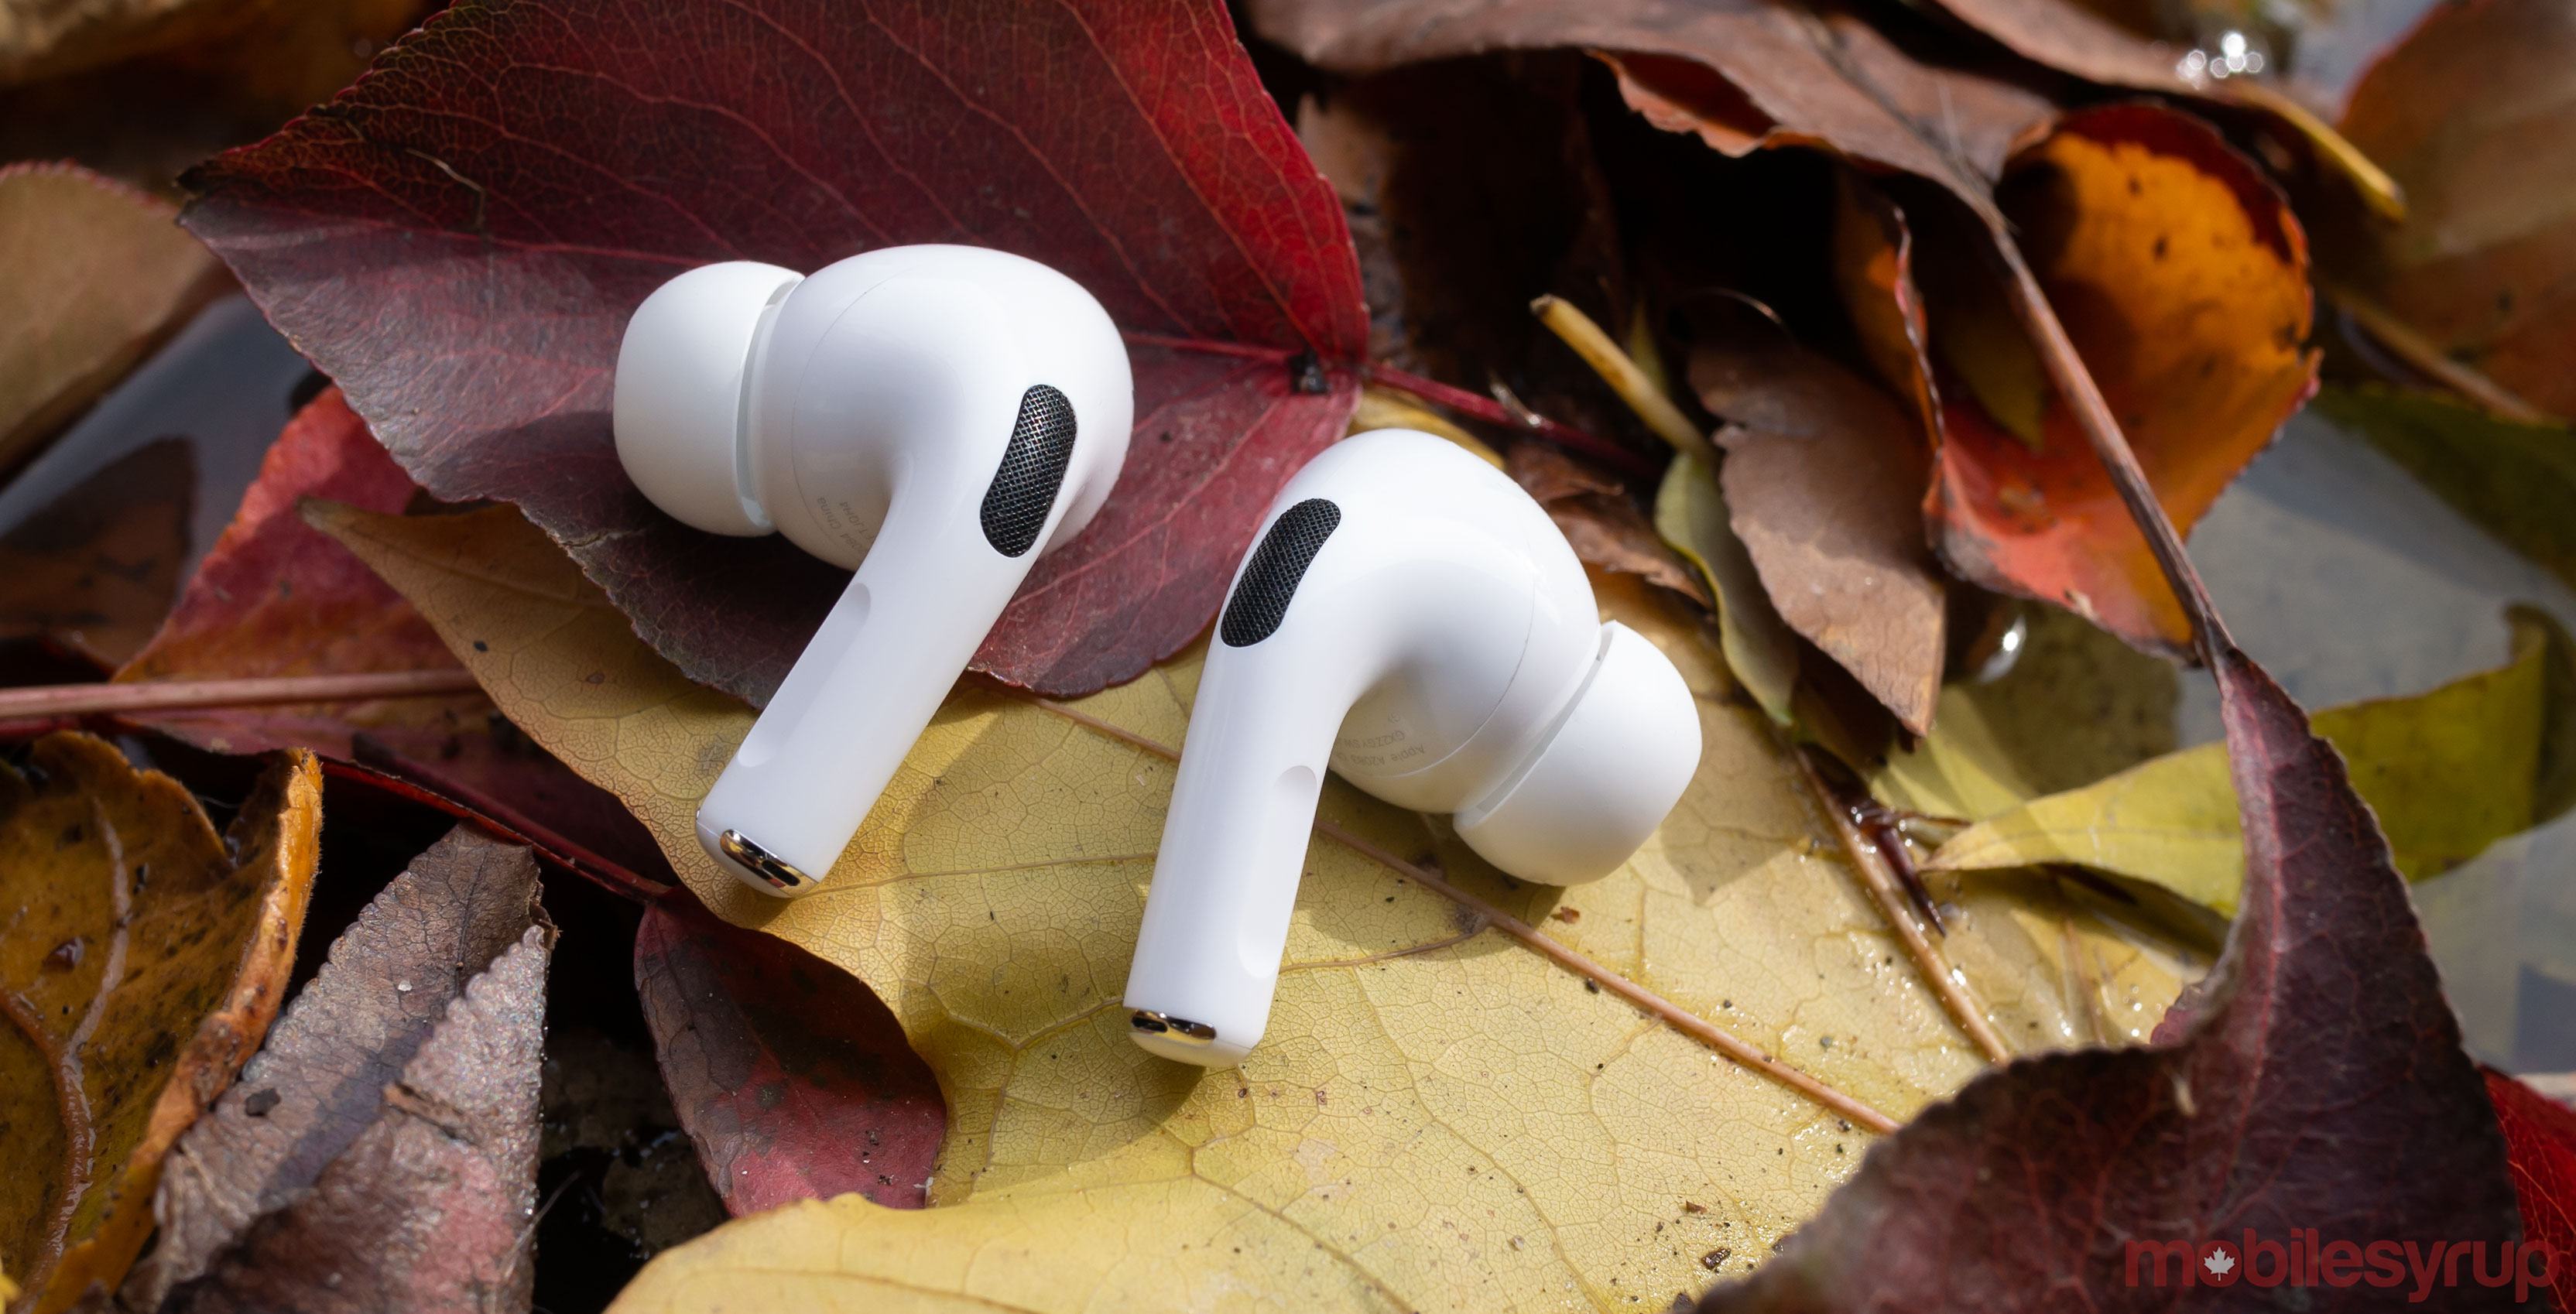 AirPods Pro Review: The best wireless earbuds with noise-cancelling